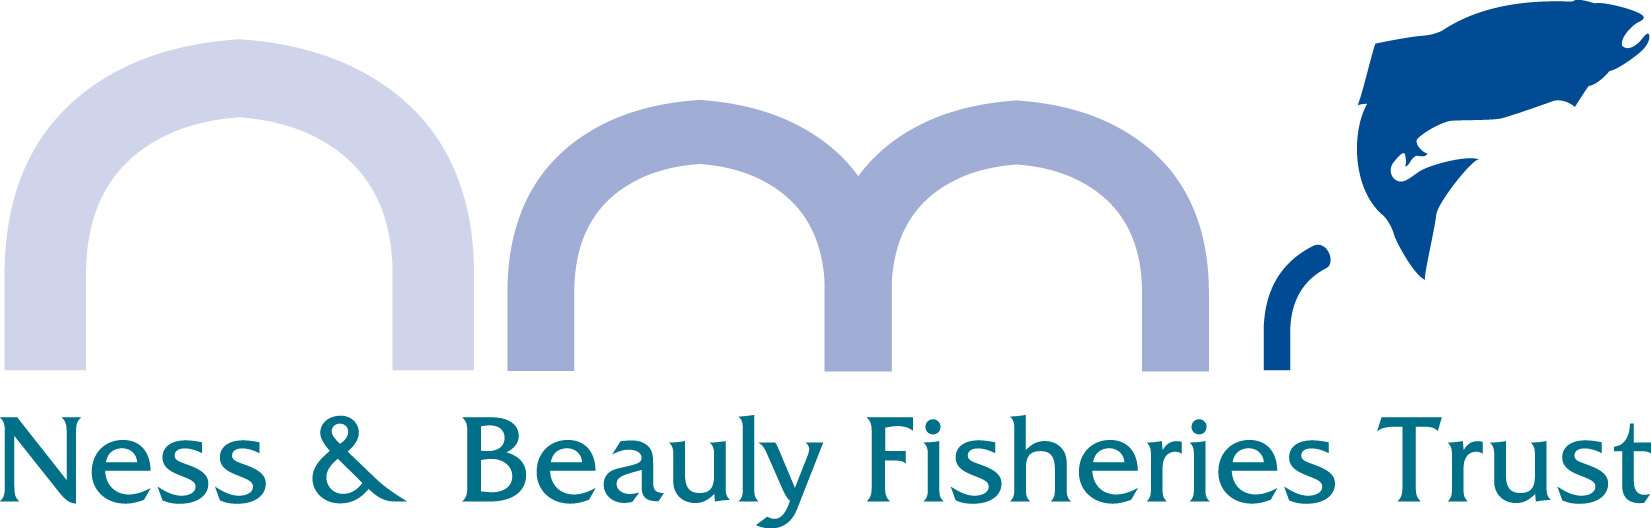 Ness & Beauly Fisheries